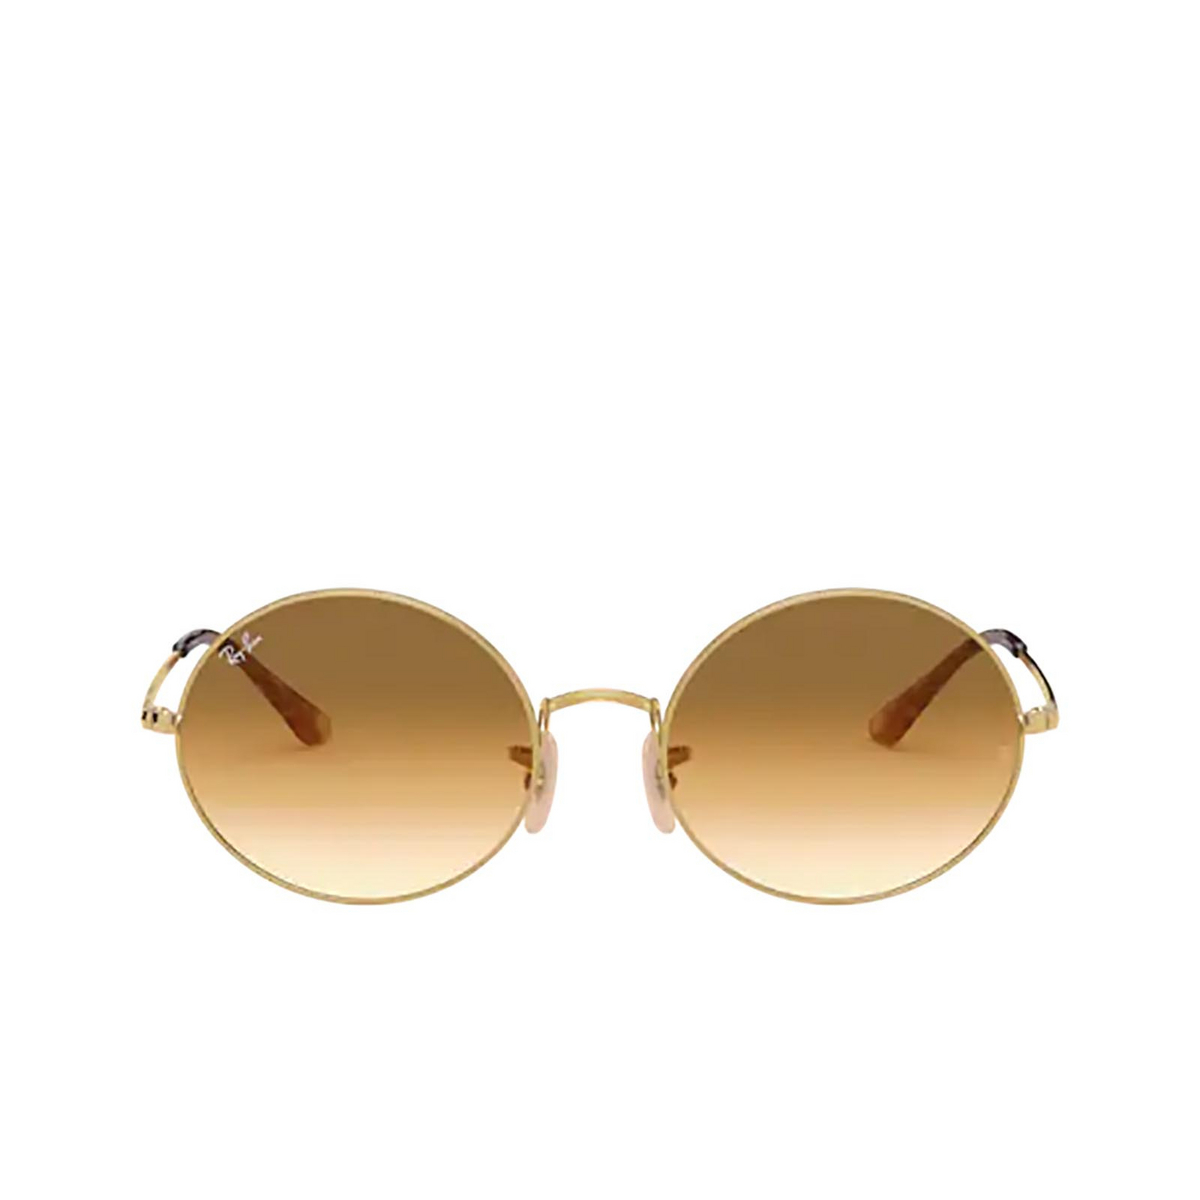 Ray-Ban® Oval Sunglasses: Oval RB1970 color Arista 914751 - front view.